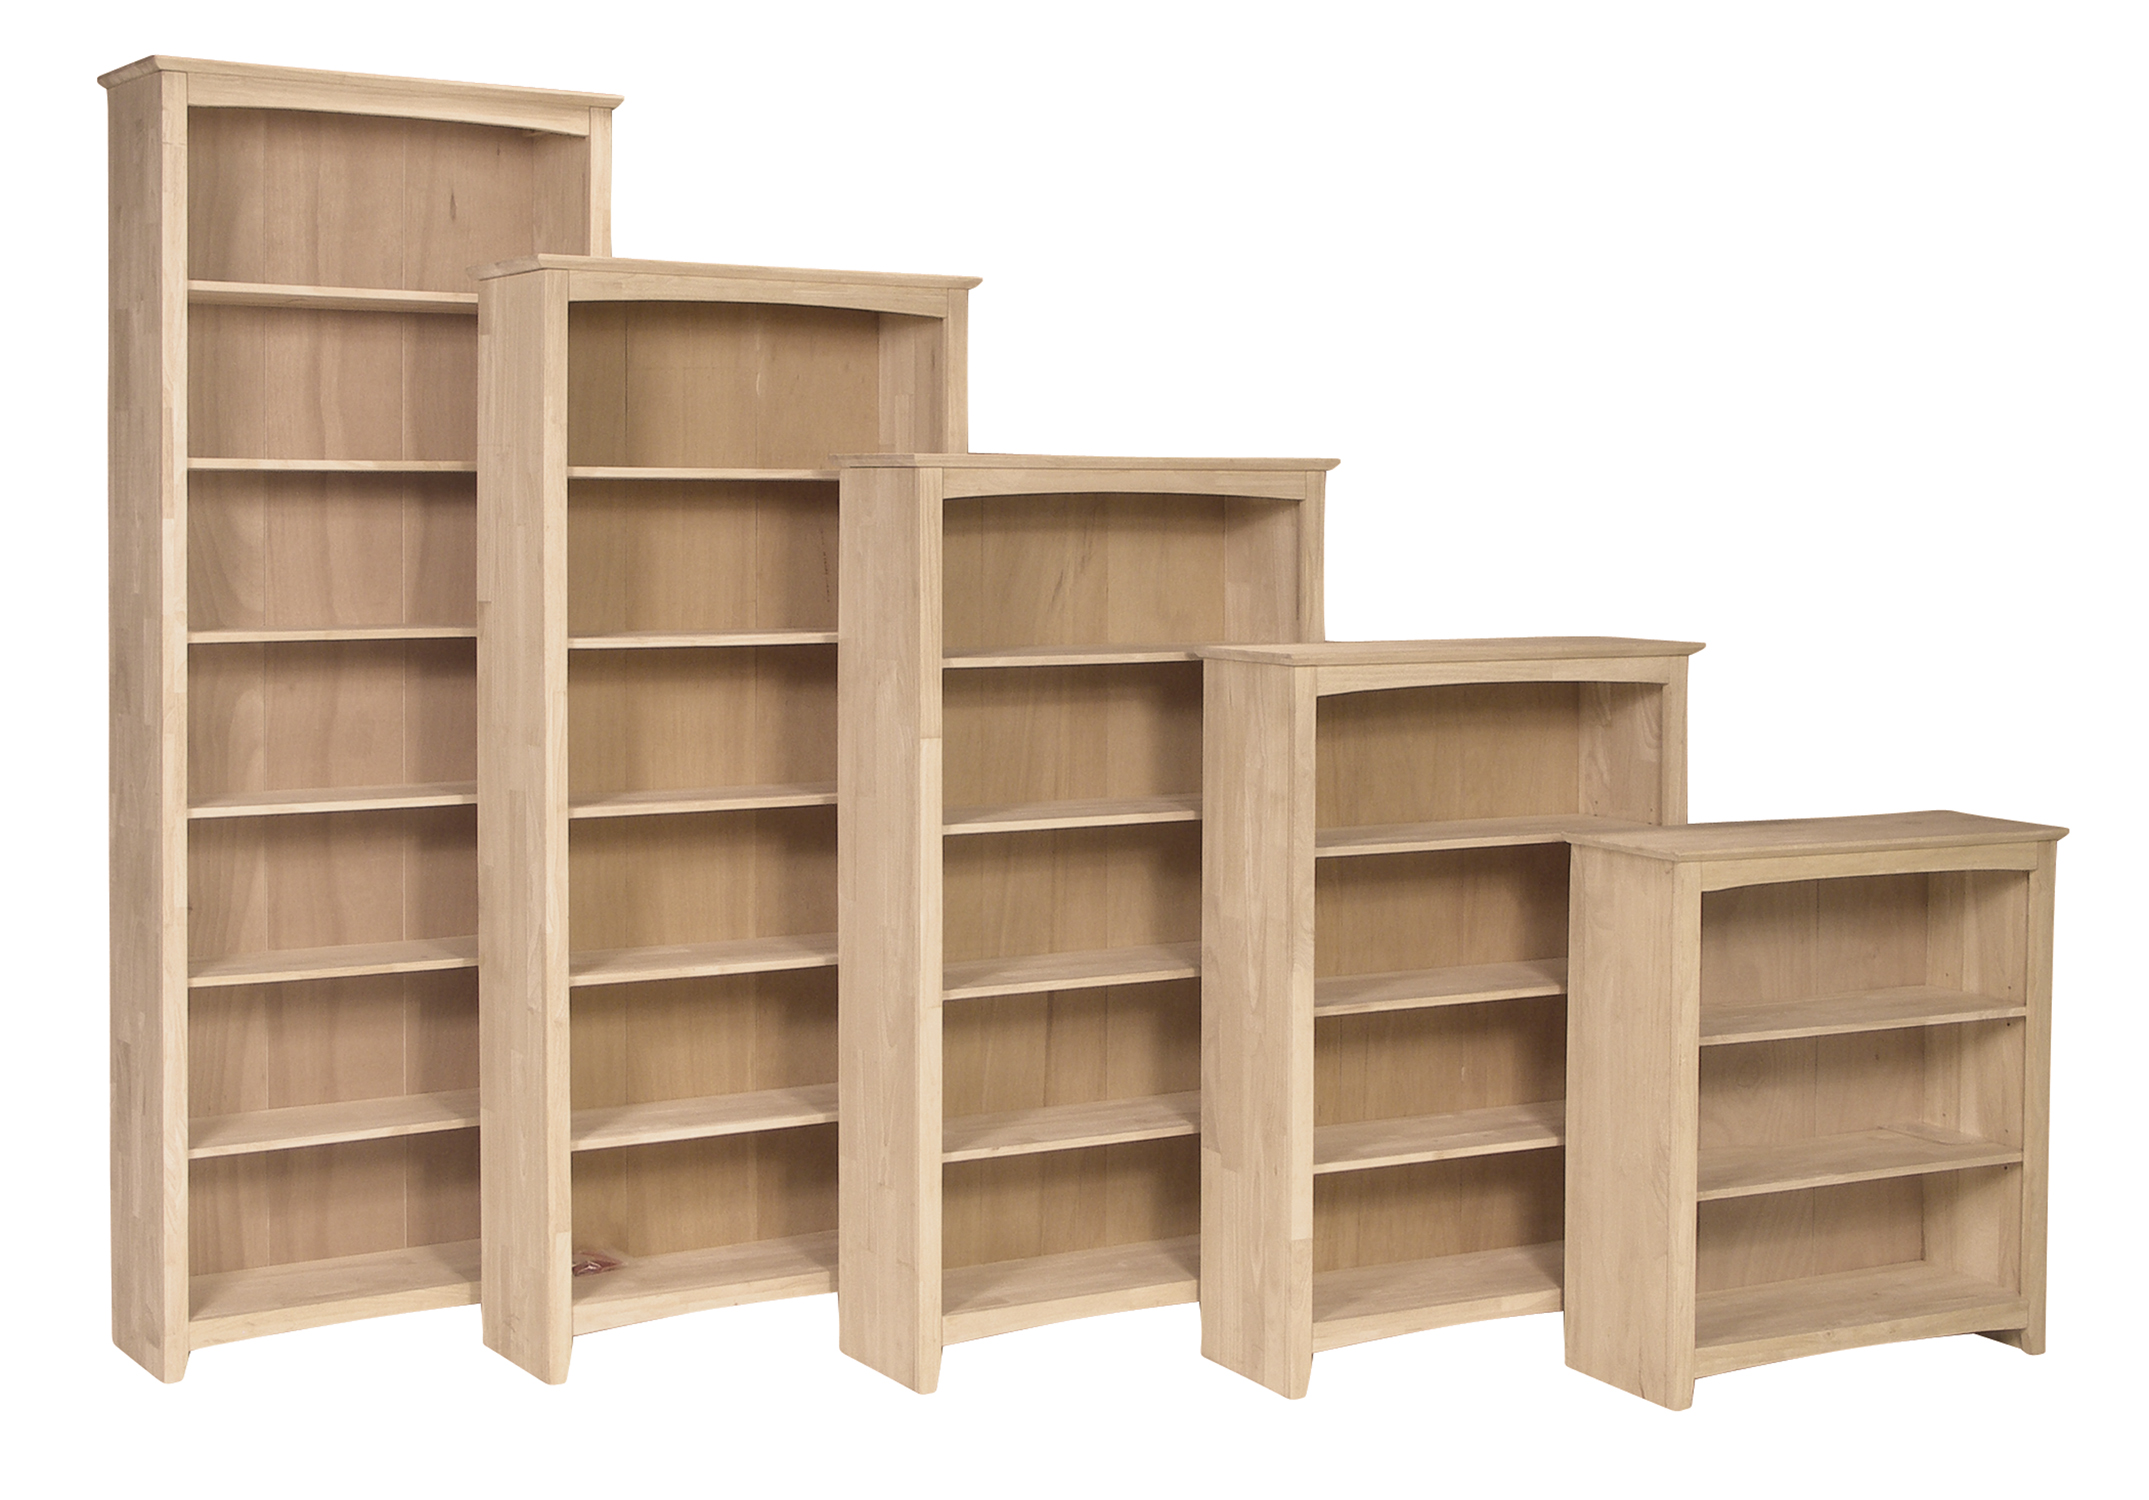 Parawood Bookcases SH-3223A_SH-3228A